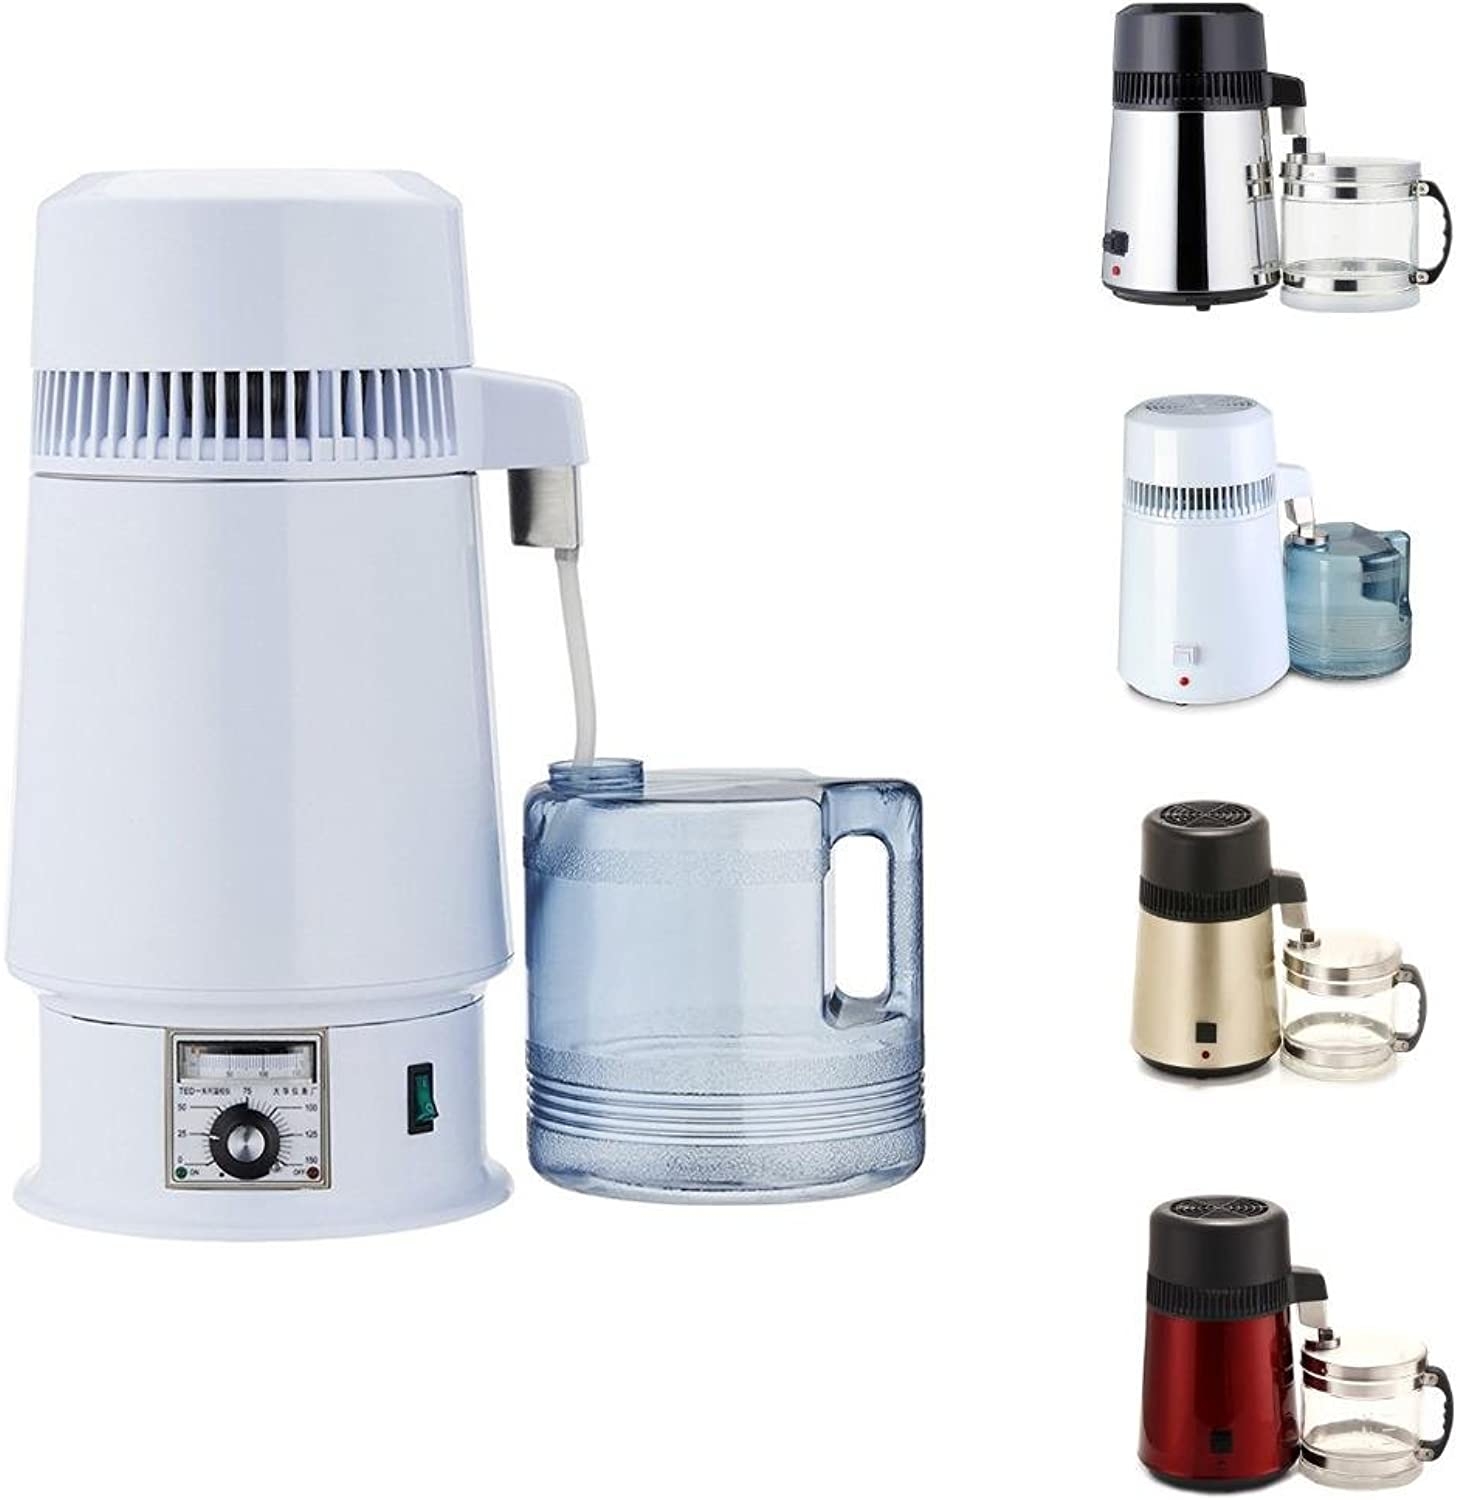 Home 110V   220V 750W 304 Stainless Steel Water Purifier Distillation 4L Pure Water Maker Distiller Set with Connection Bottle, Also can Make Essential Oil